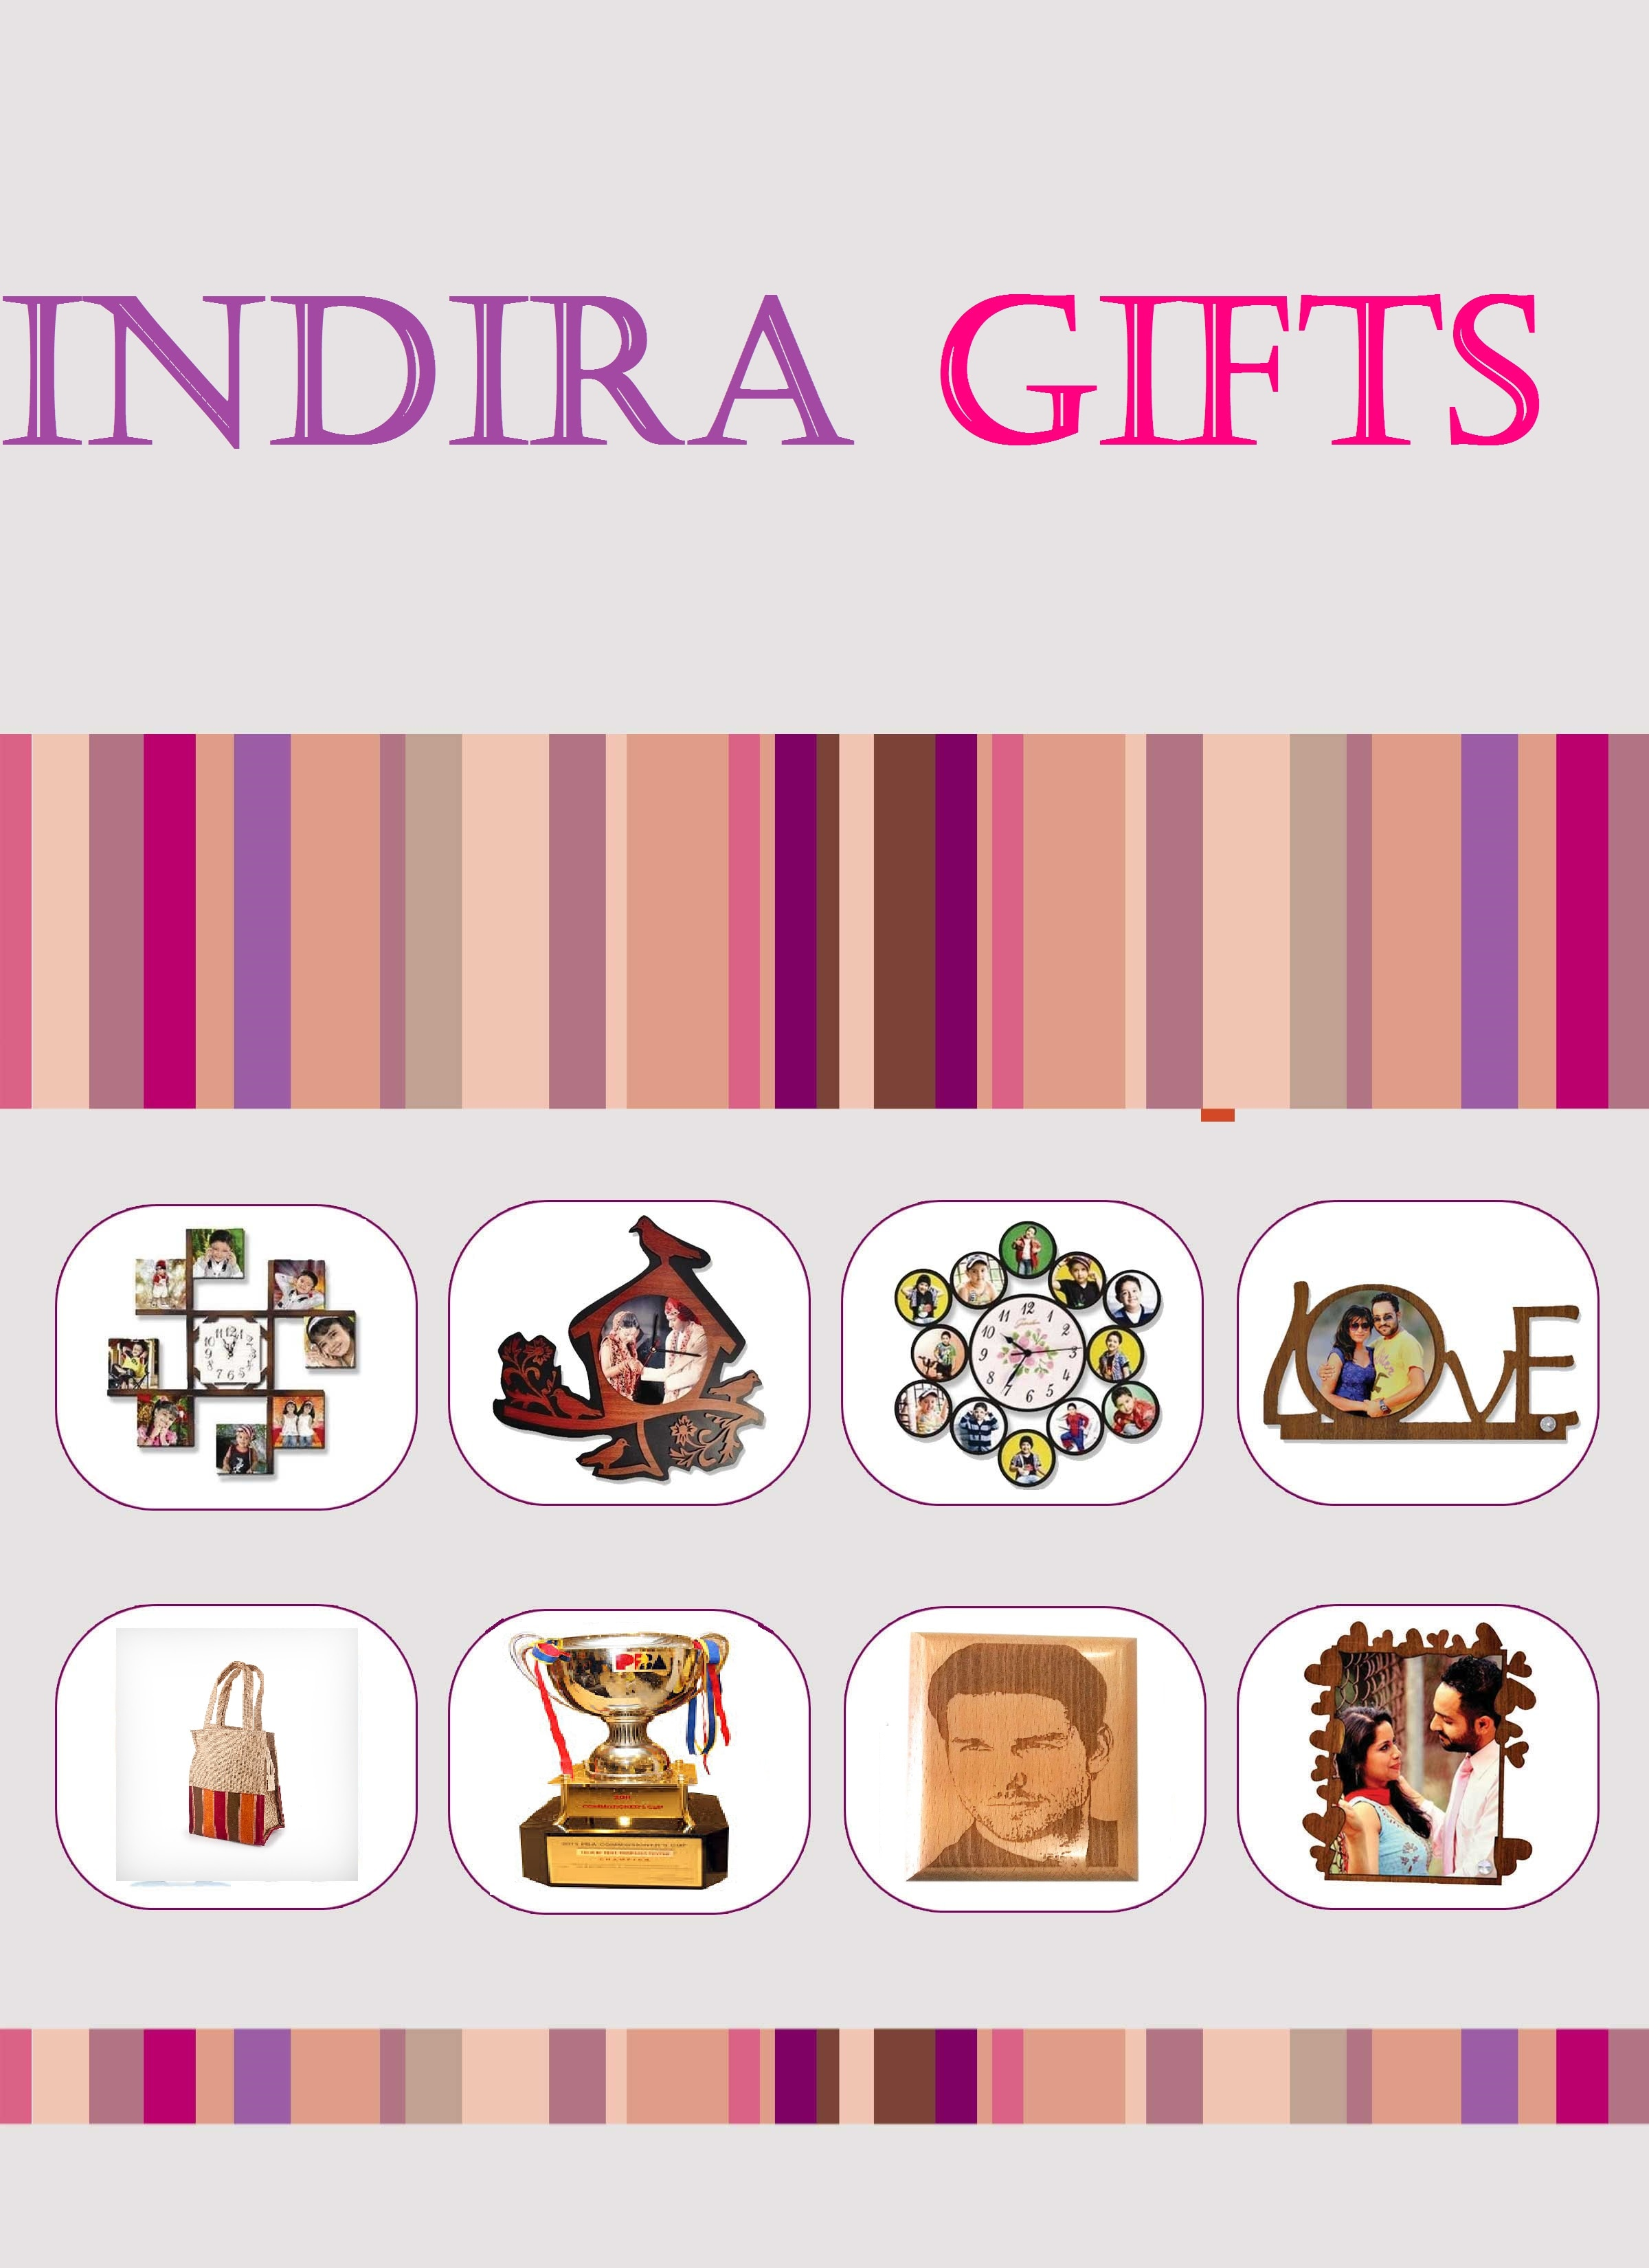 INDIRA GIFTS AND STATIONARY